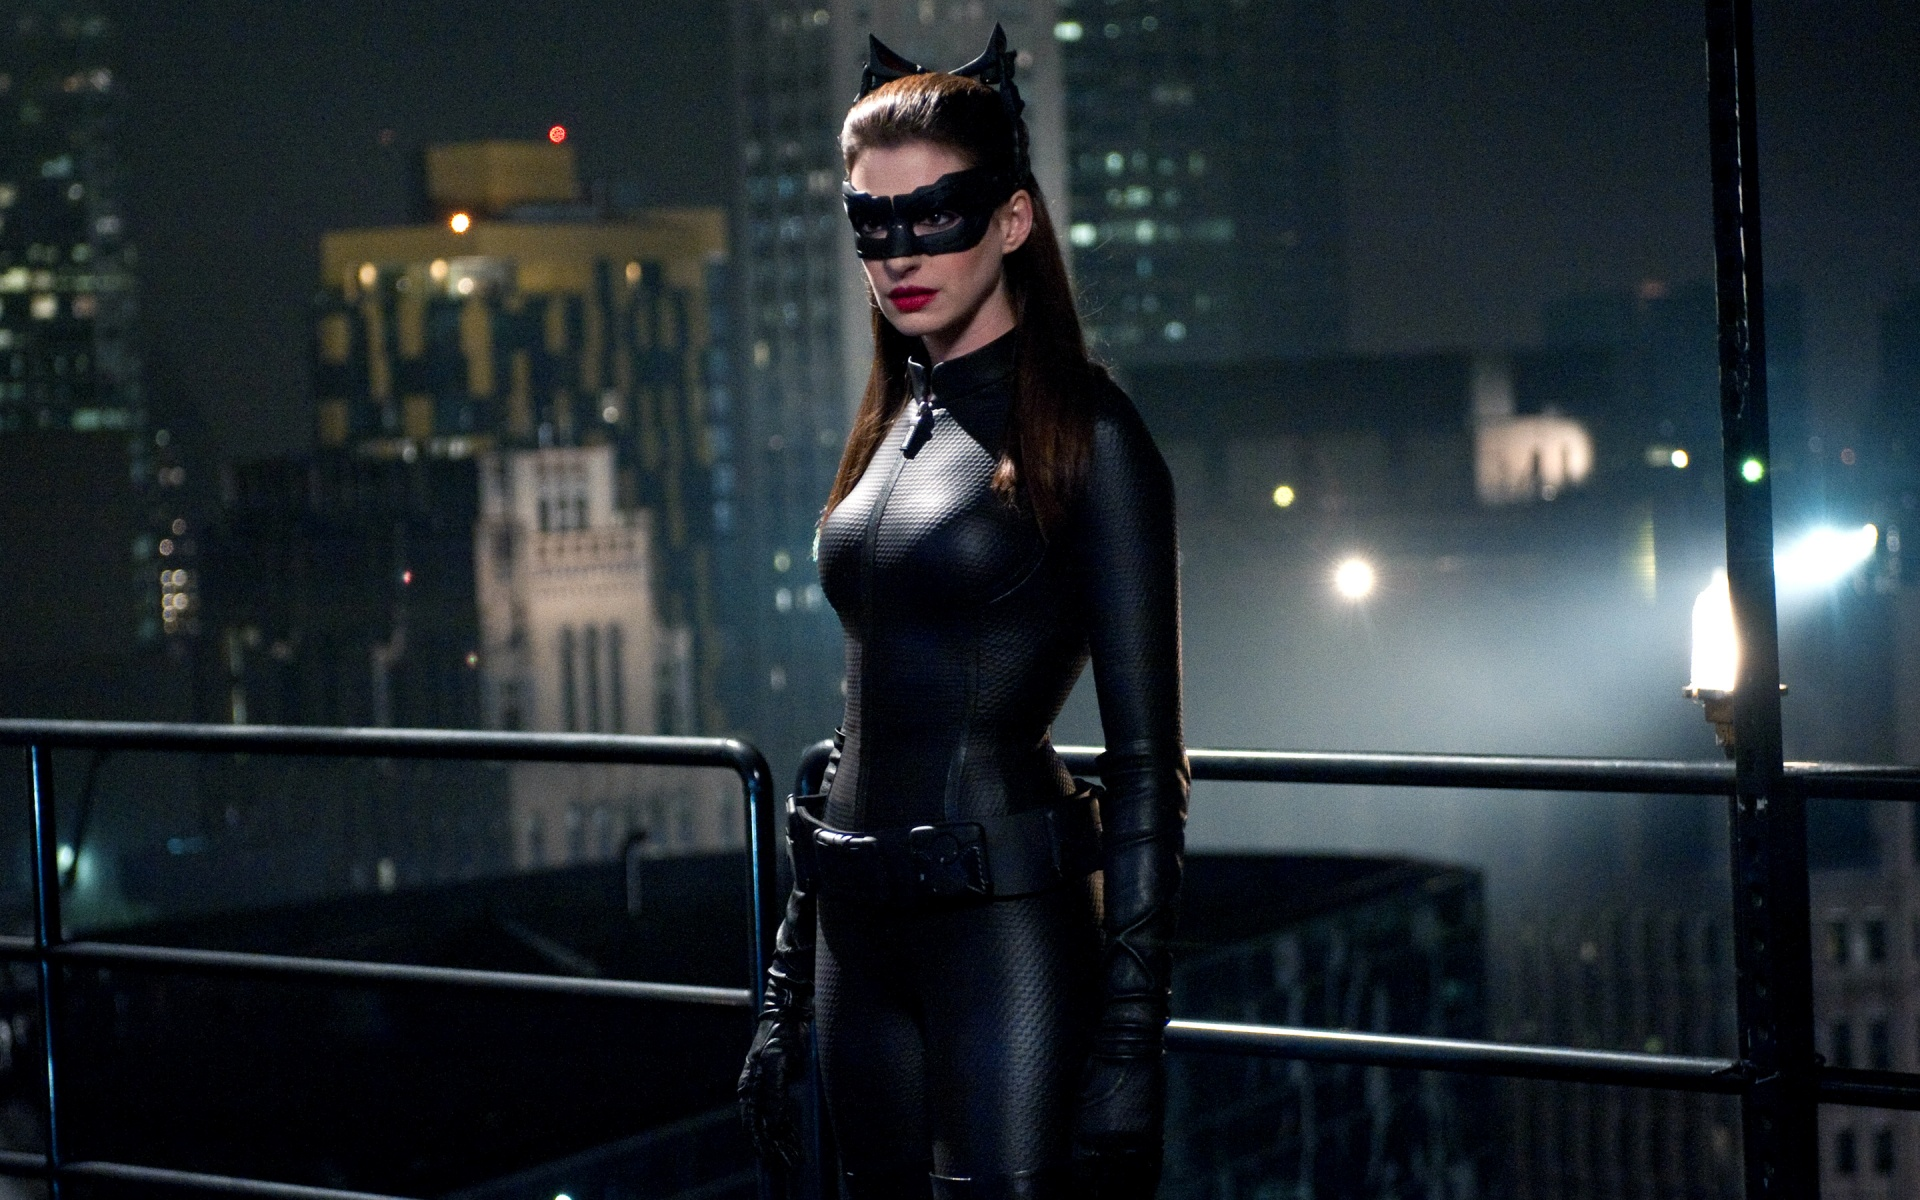 anne hathaway images hd A15